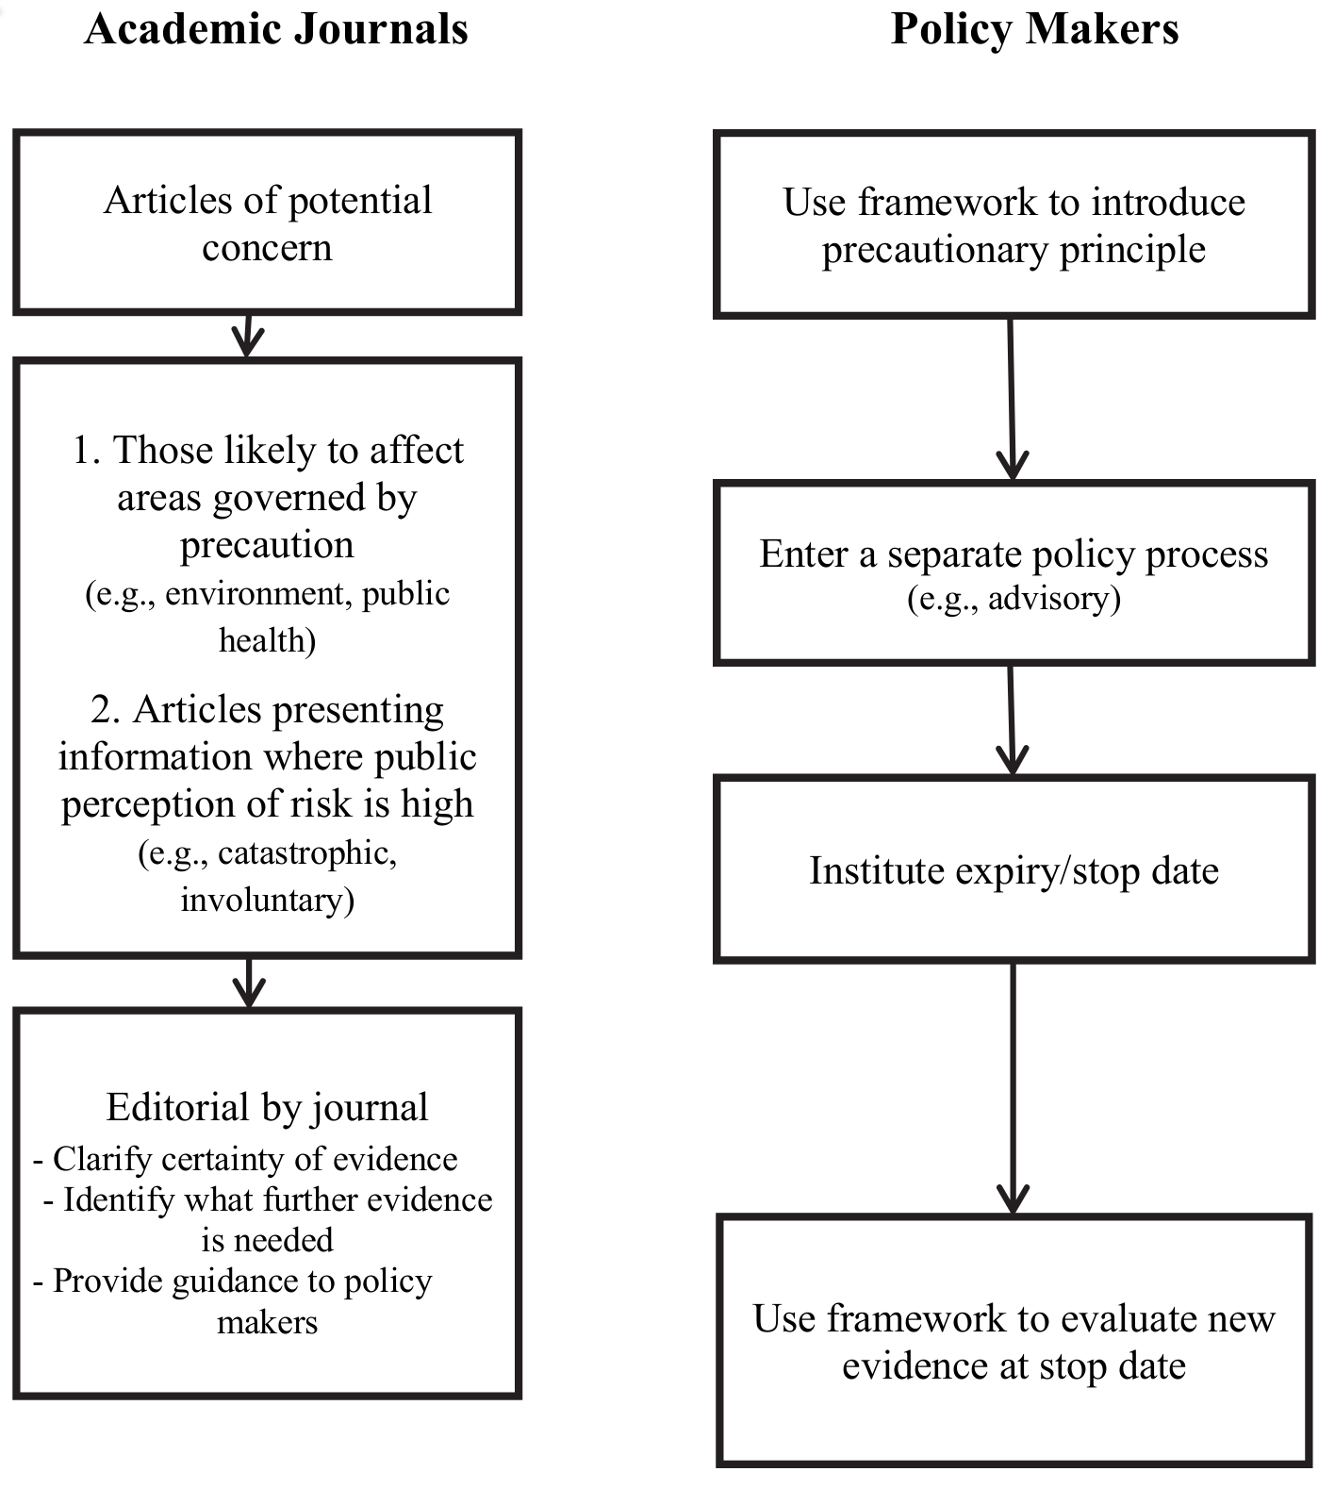 Recommendations for policy makers and journal editors.